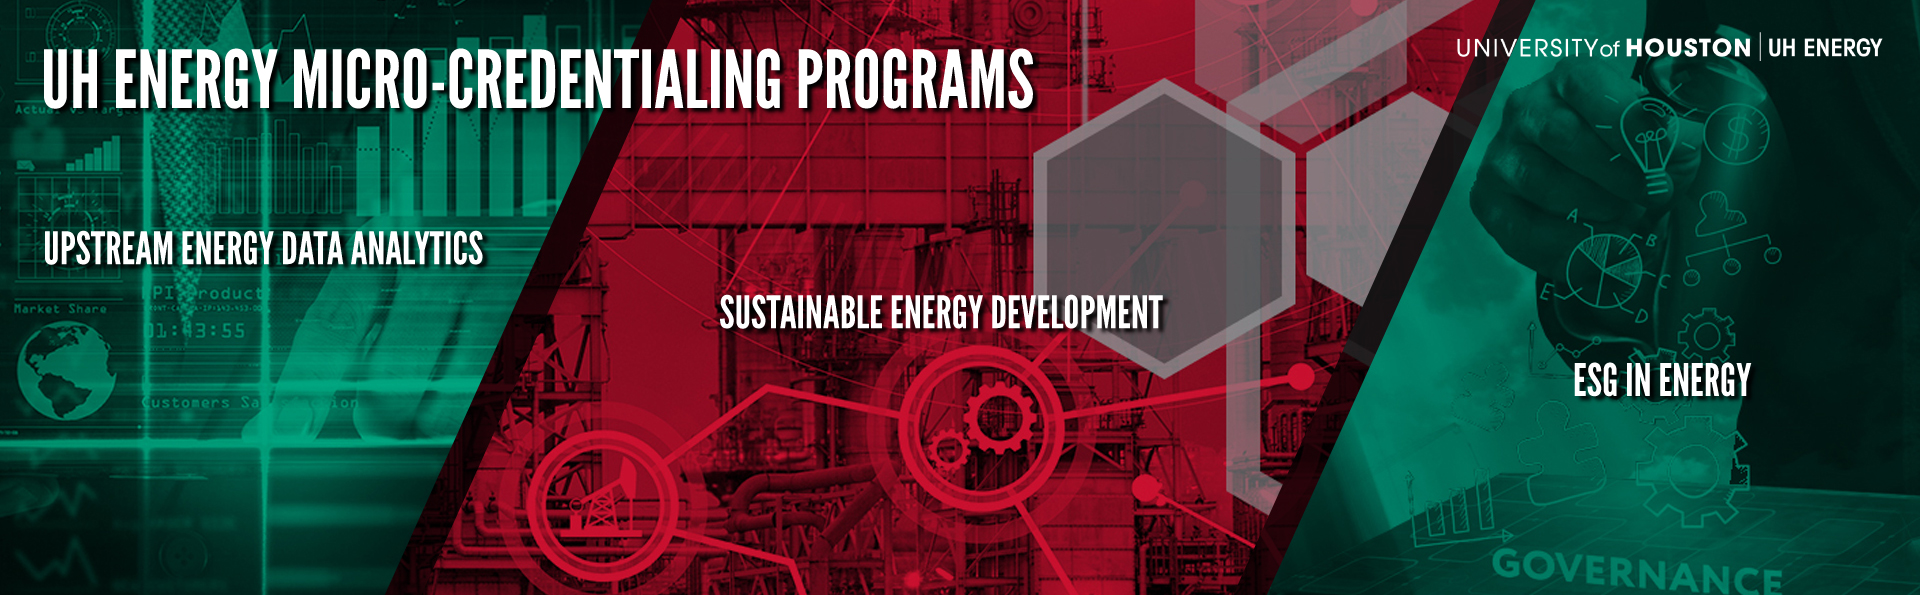 UH Energy Micro-credentialing Programs Banner